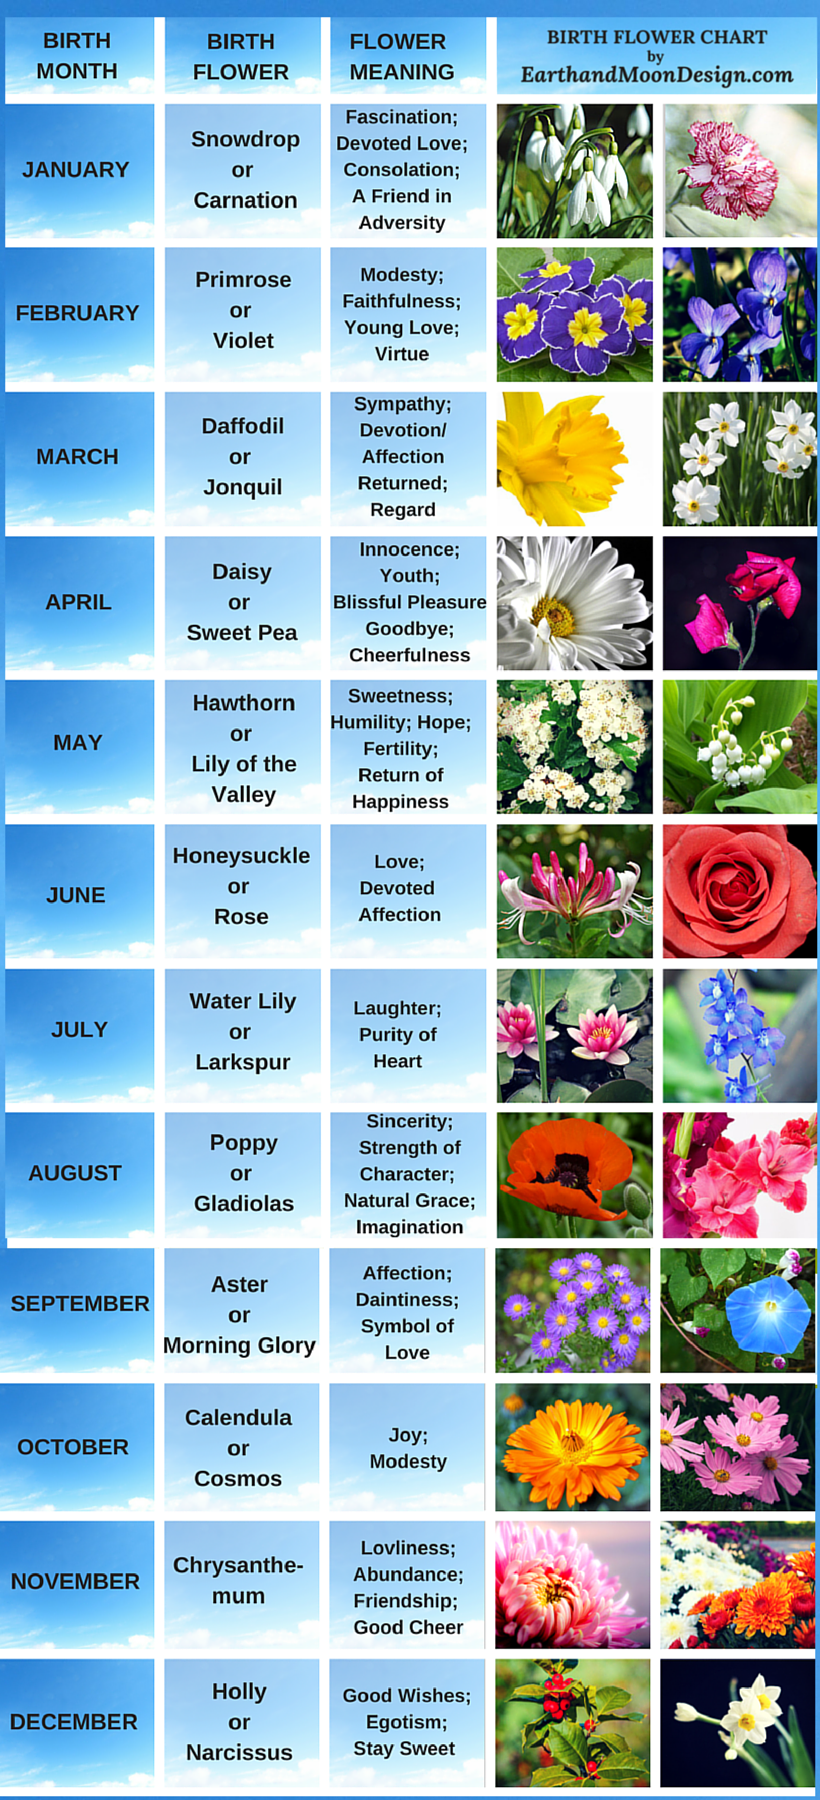 Birthday flowers of the month p ap 2018 birthday flowers of the month next image izmirmasajfo